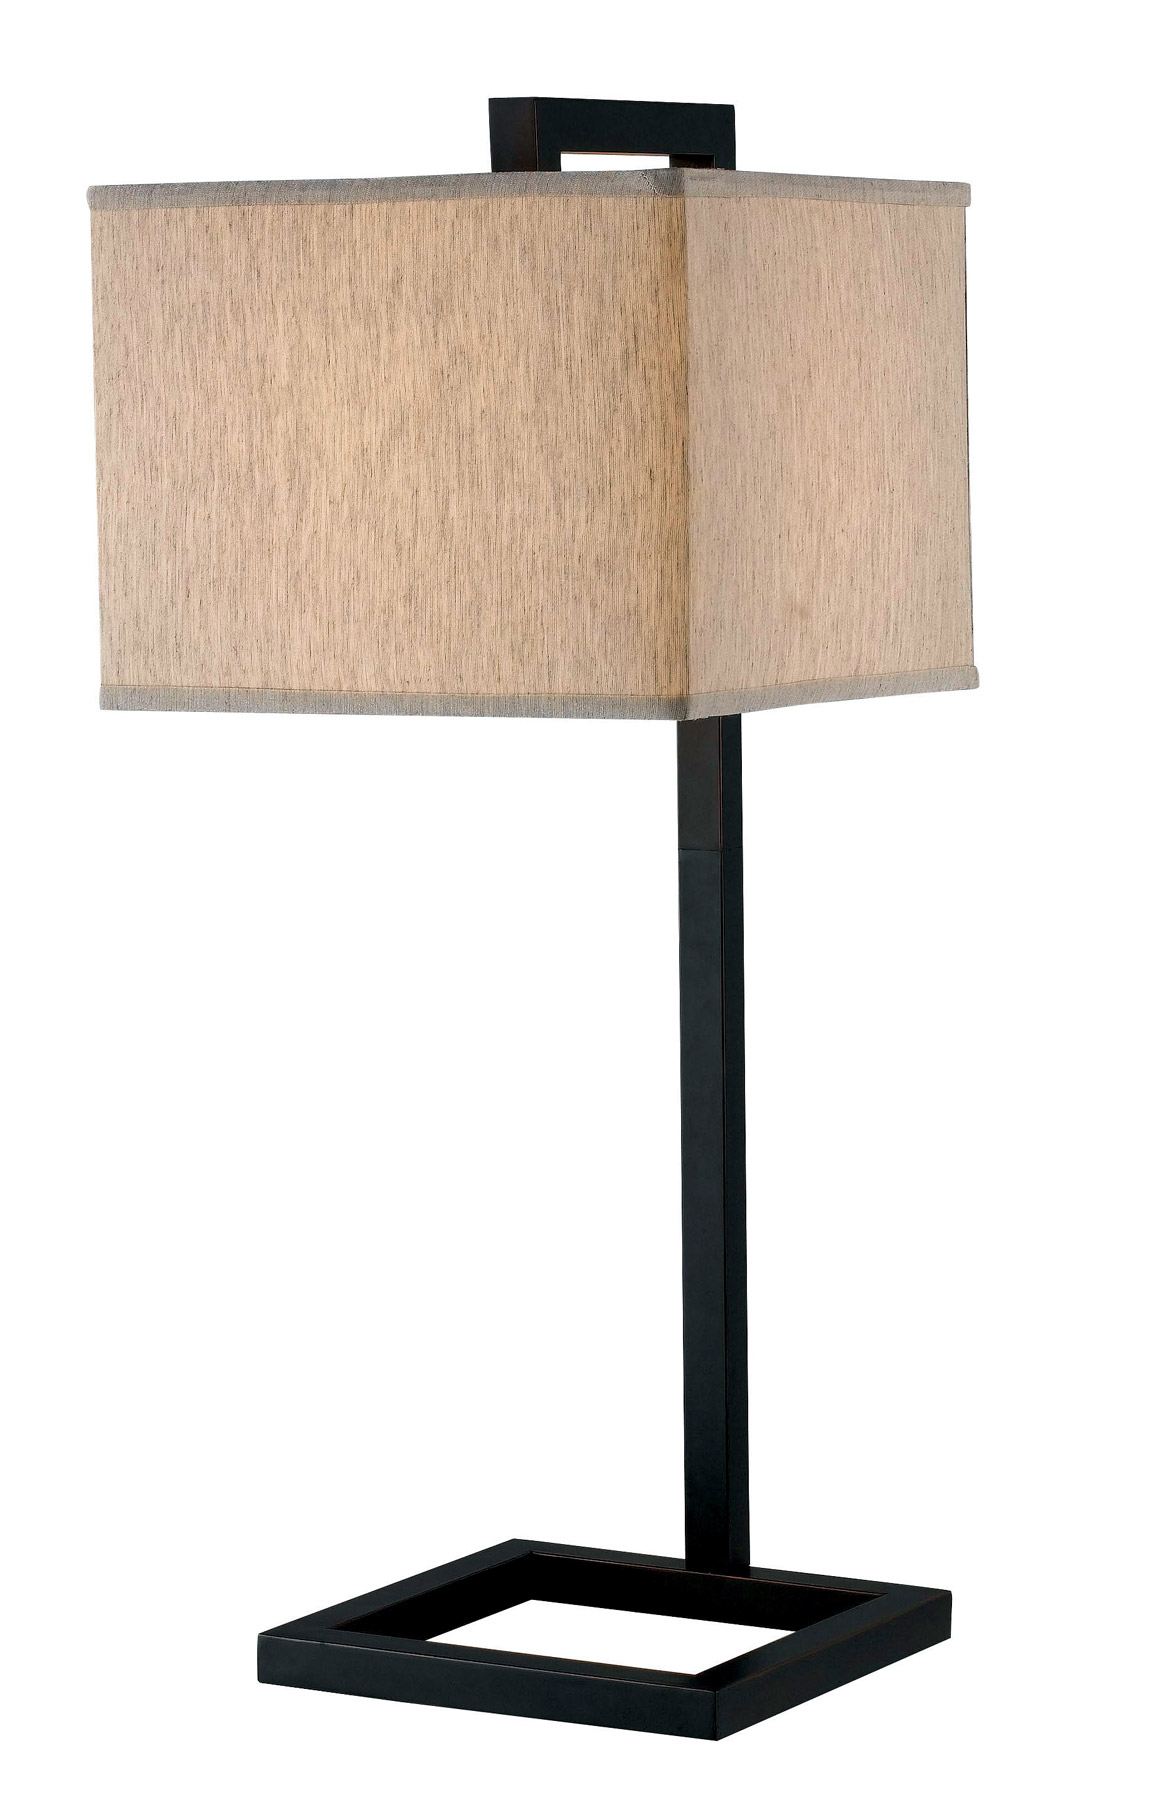 Home 21079ORB 4 Square Desk Lamp